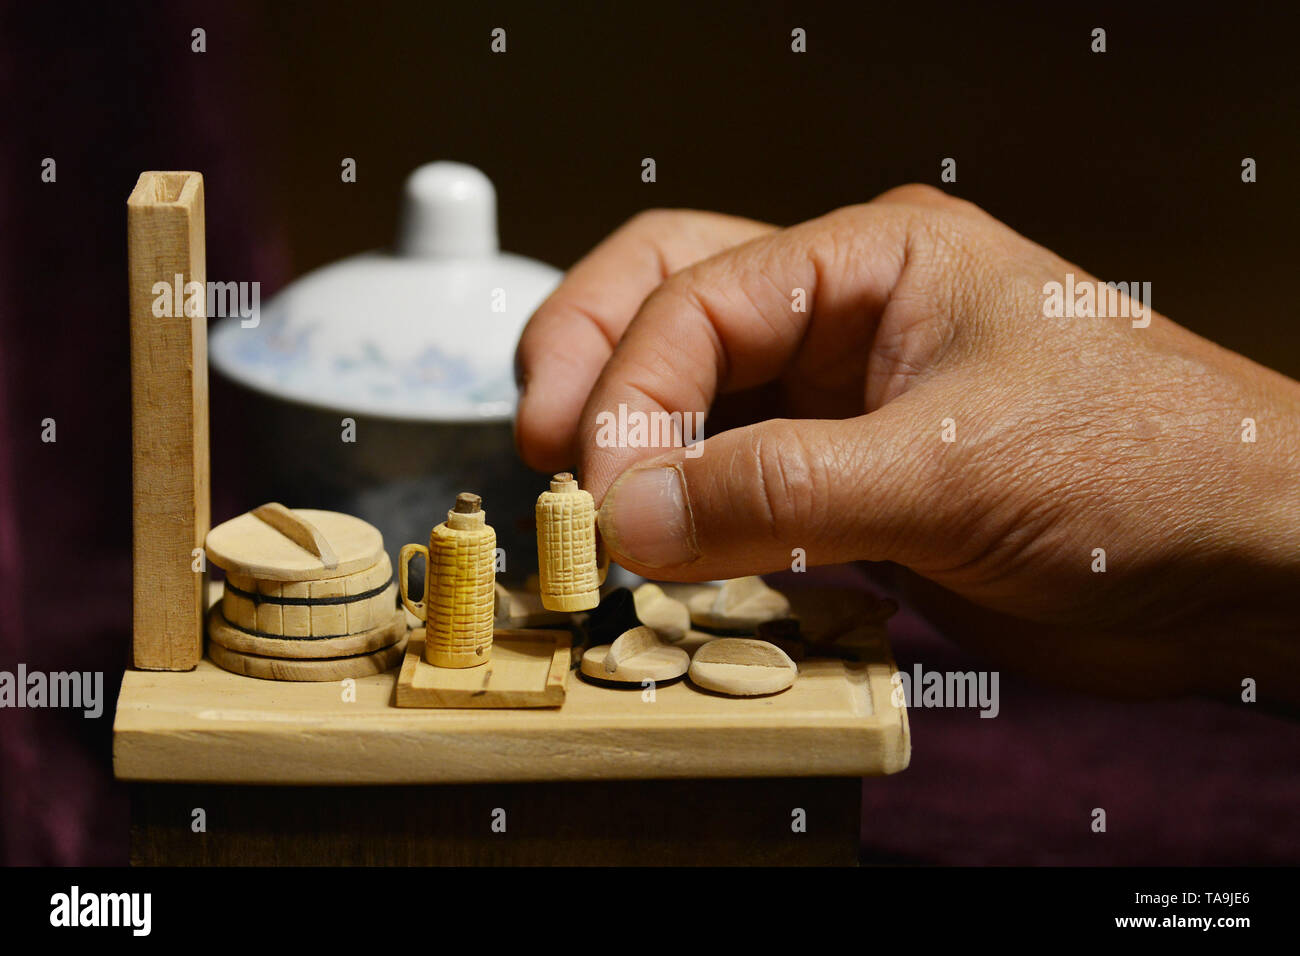 Beijing, China's Jiangsu Province. 21st May, 2019. Chen Hesheng puts a finger-sized wooden thermos bottle on the miniature model of cooking stove in Nanjing, east China's Jiangsu Province, May 21, 2019. Chen Hesheng, a 70-year-old carpenter, has made about 170 miniature models of antique articles including agricultural equipment and daily necessities over the past decade. Credit: Fang Dongxu/Xinhua/Alamy Live News - Stock Image